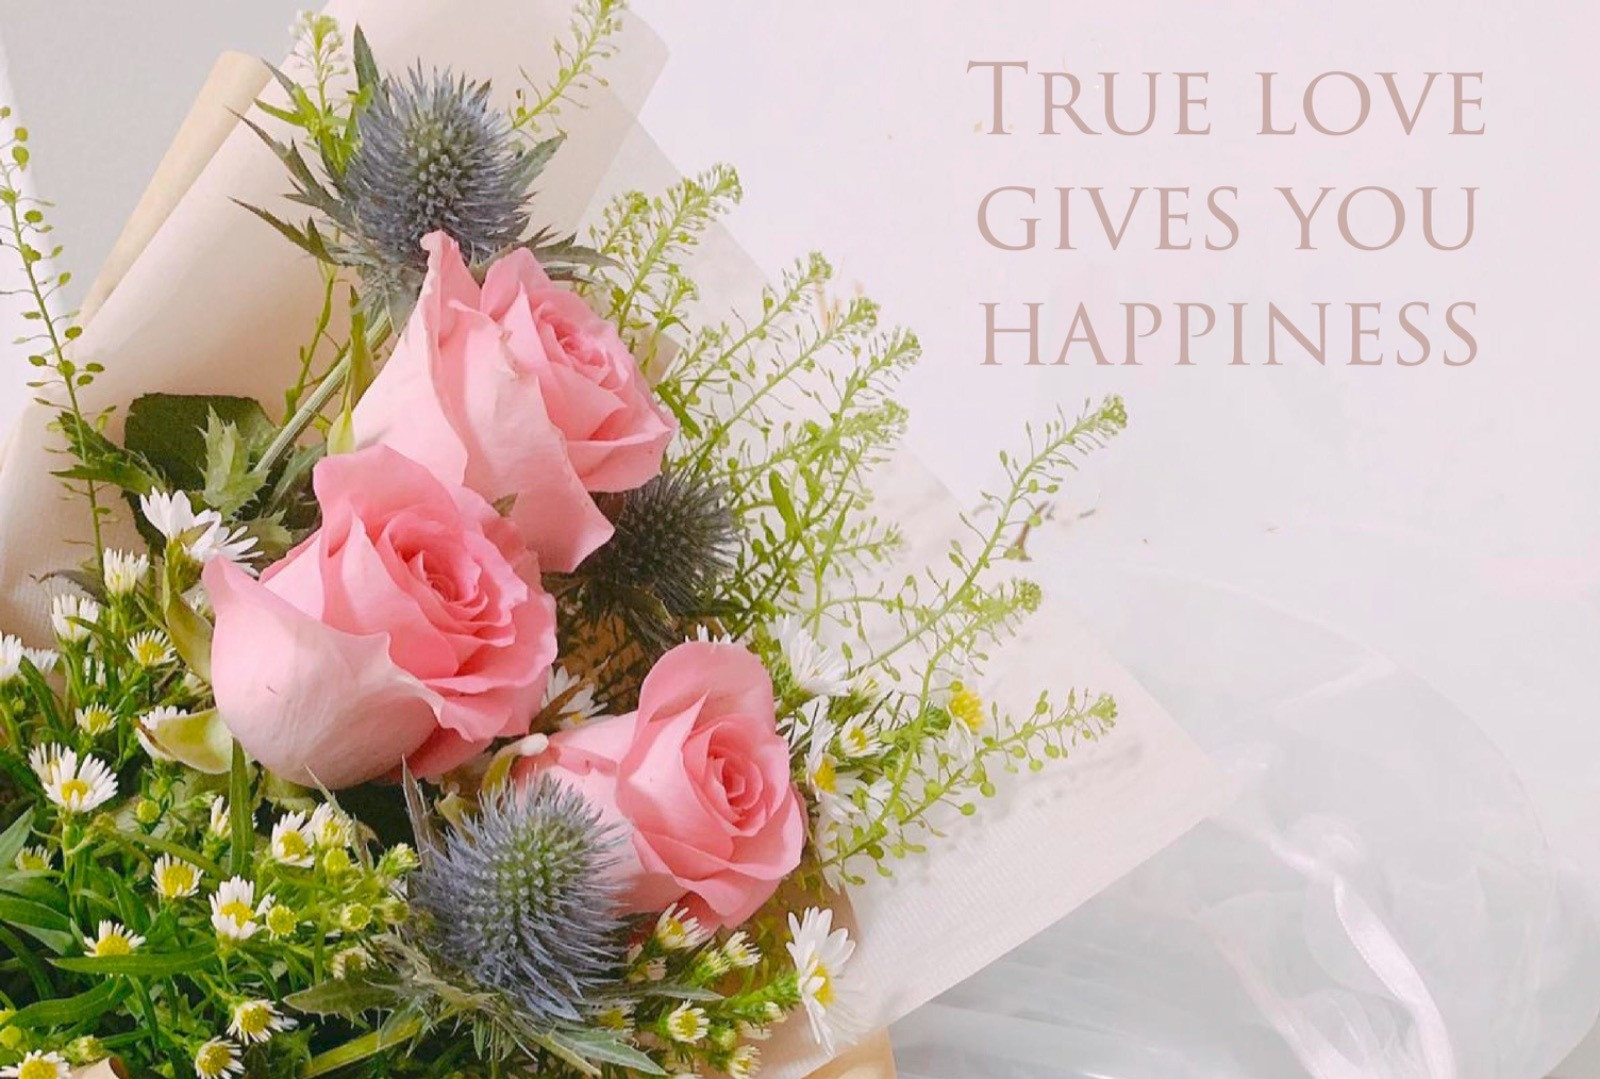 True love give you happiness